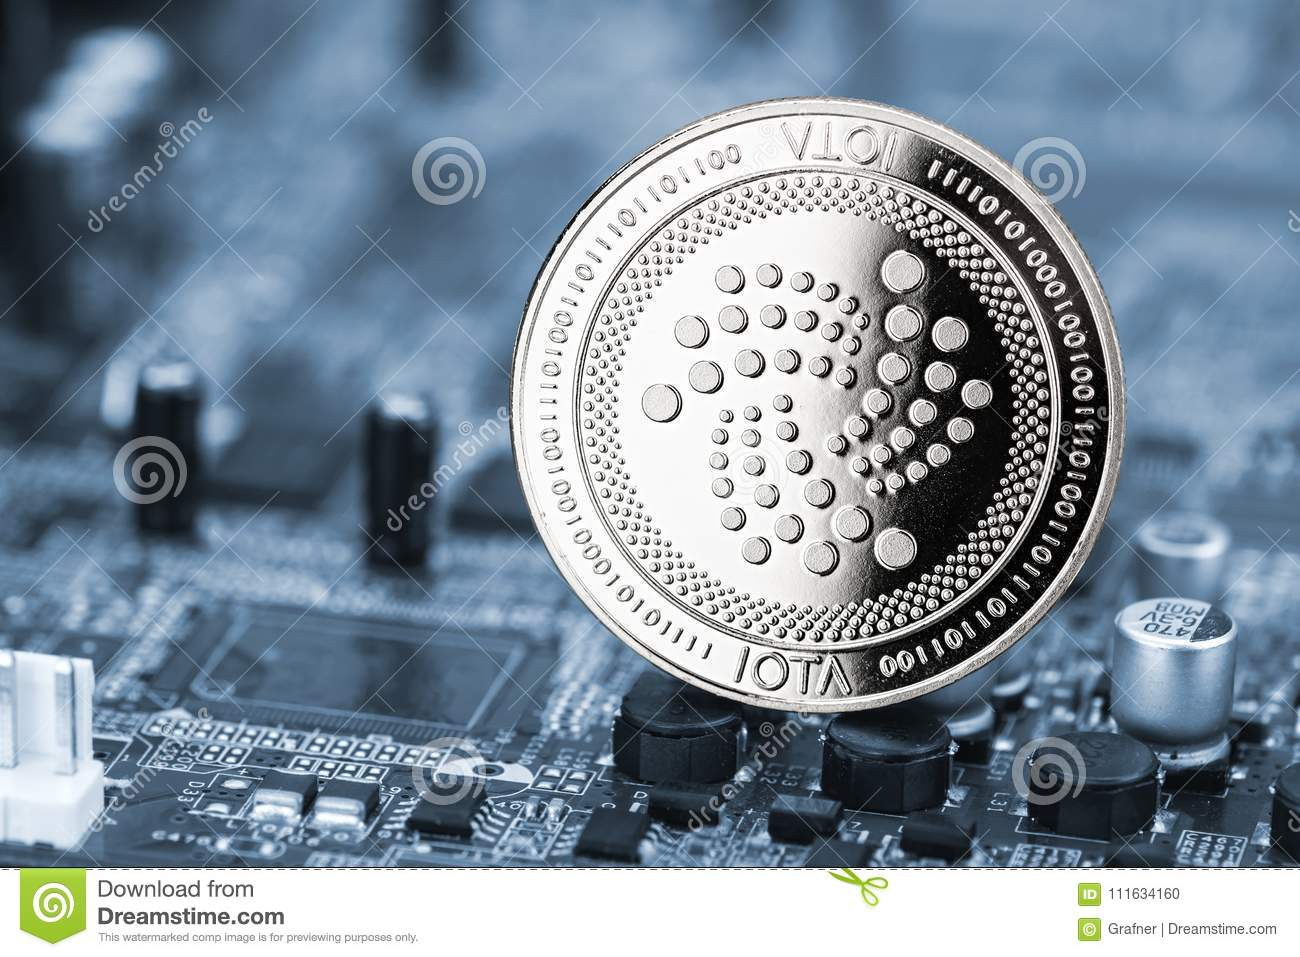 Iota crypto currency silver coin mining computer background